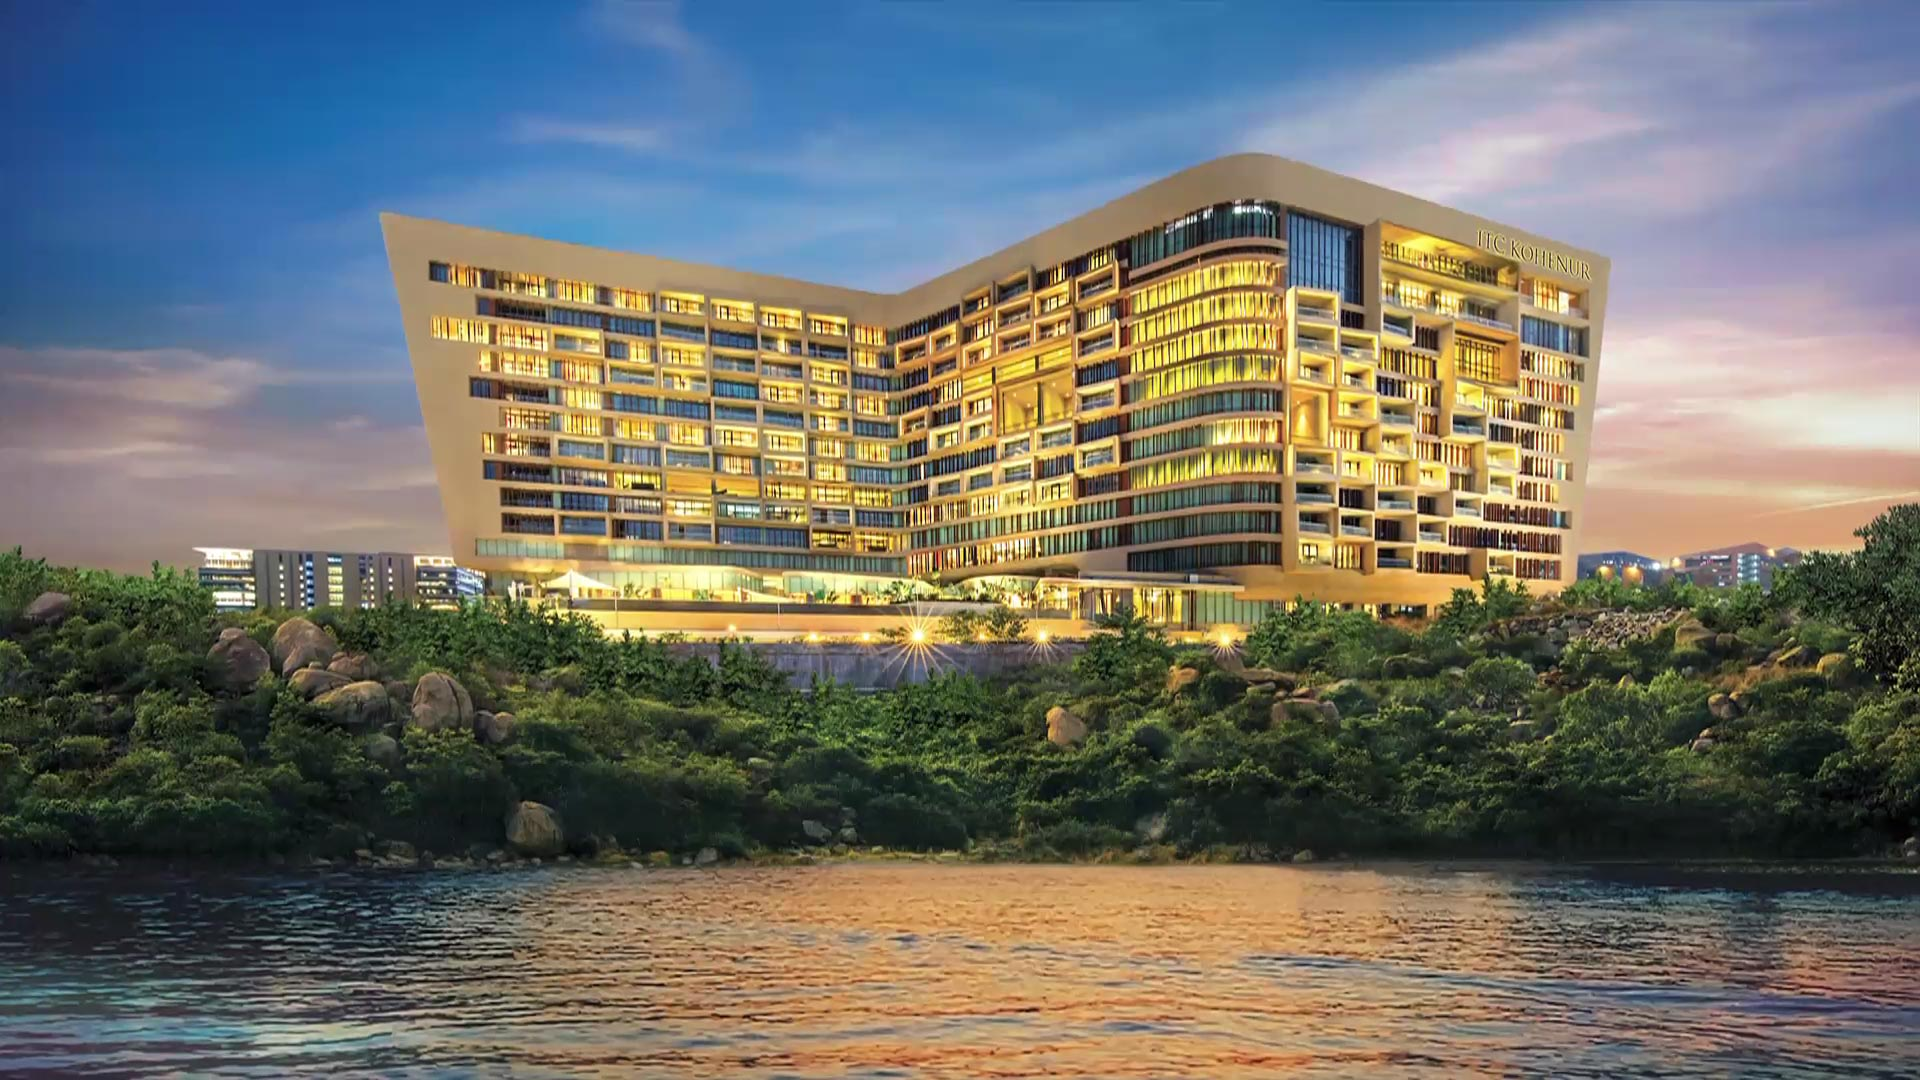 ITC Hotels - One of the fastest growing hospitality chains in India